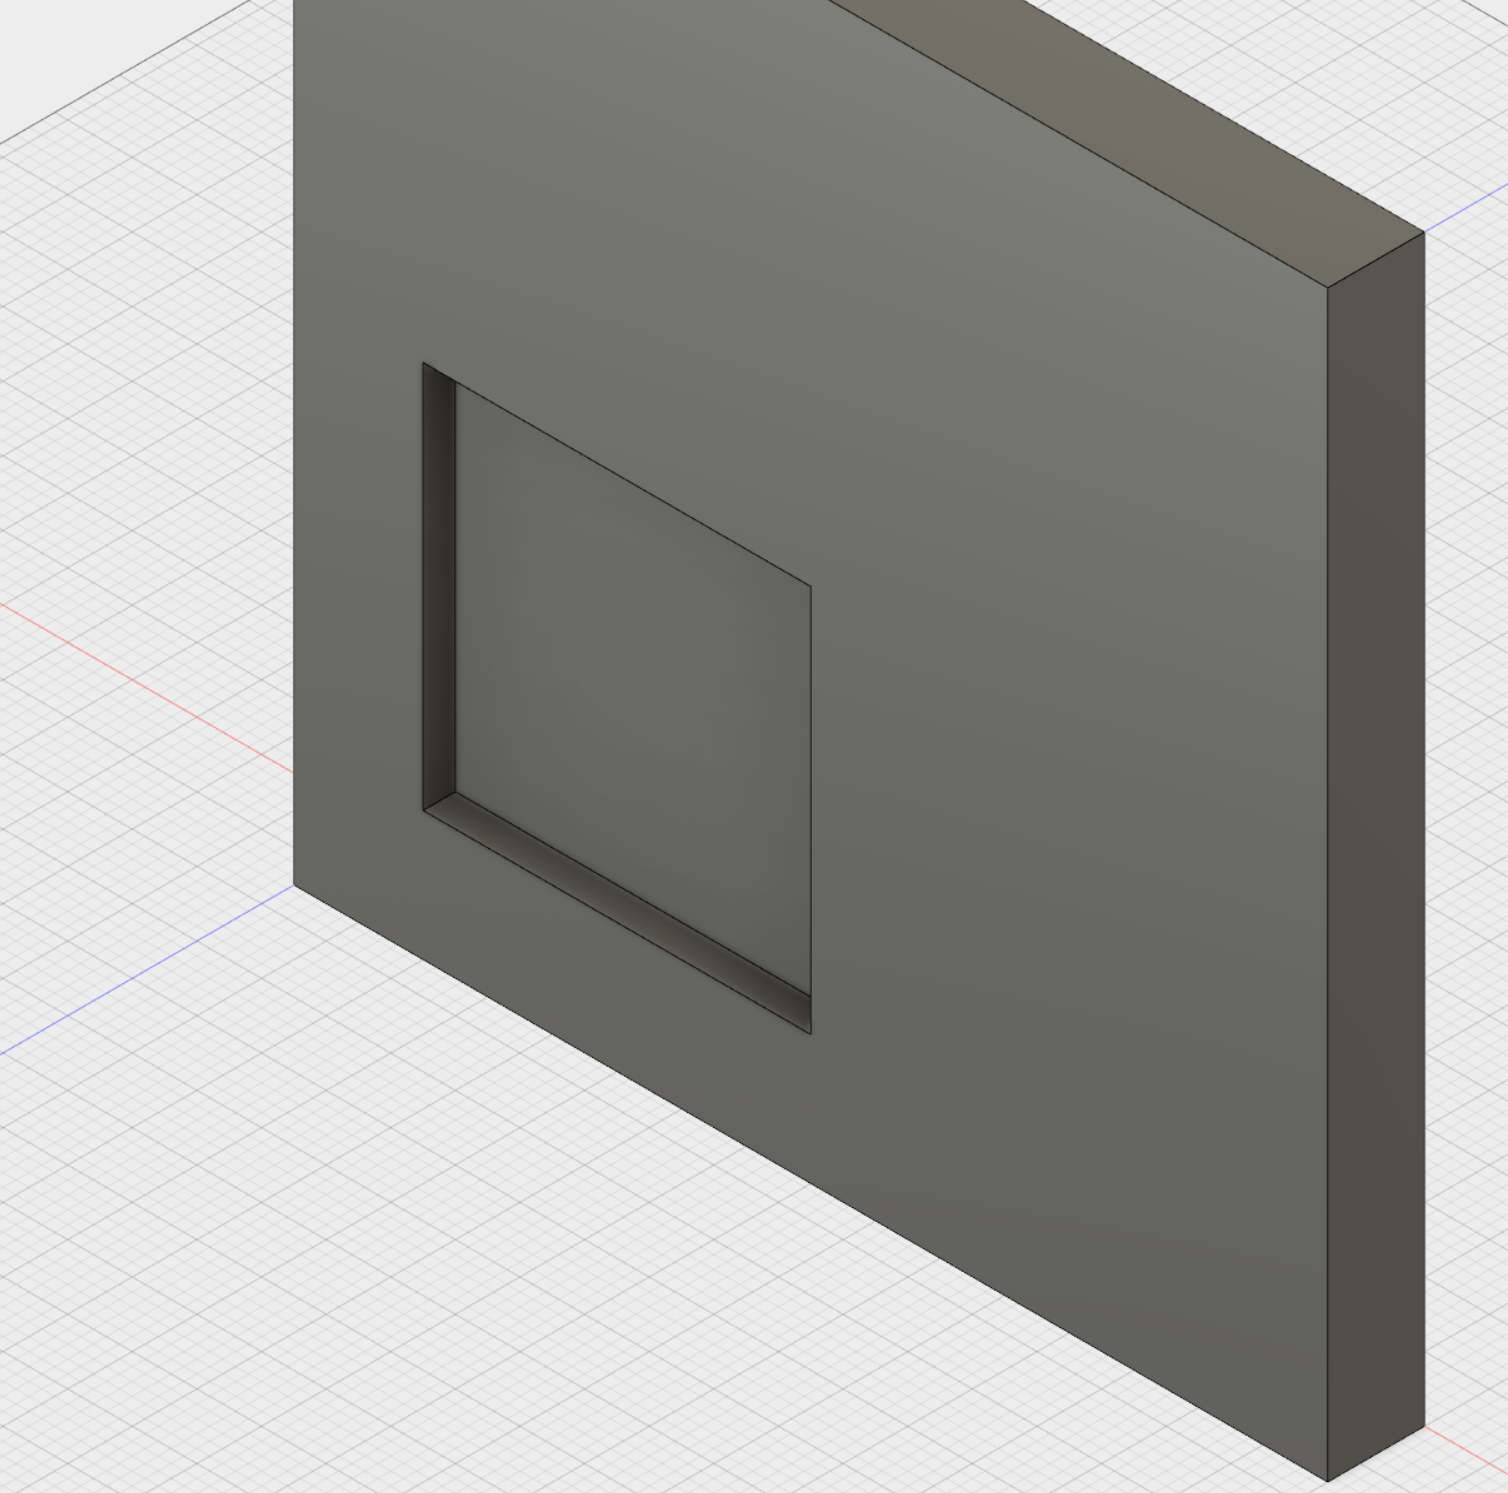 fusion 360 how to draw text on cylinder